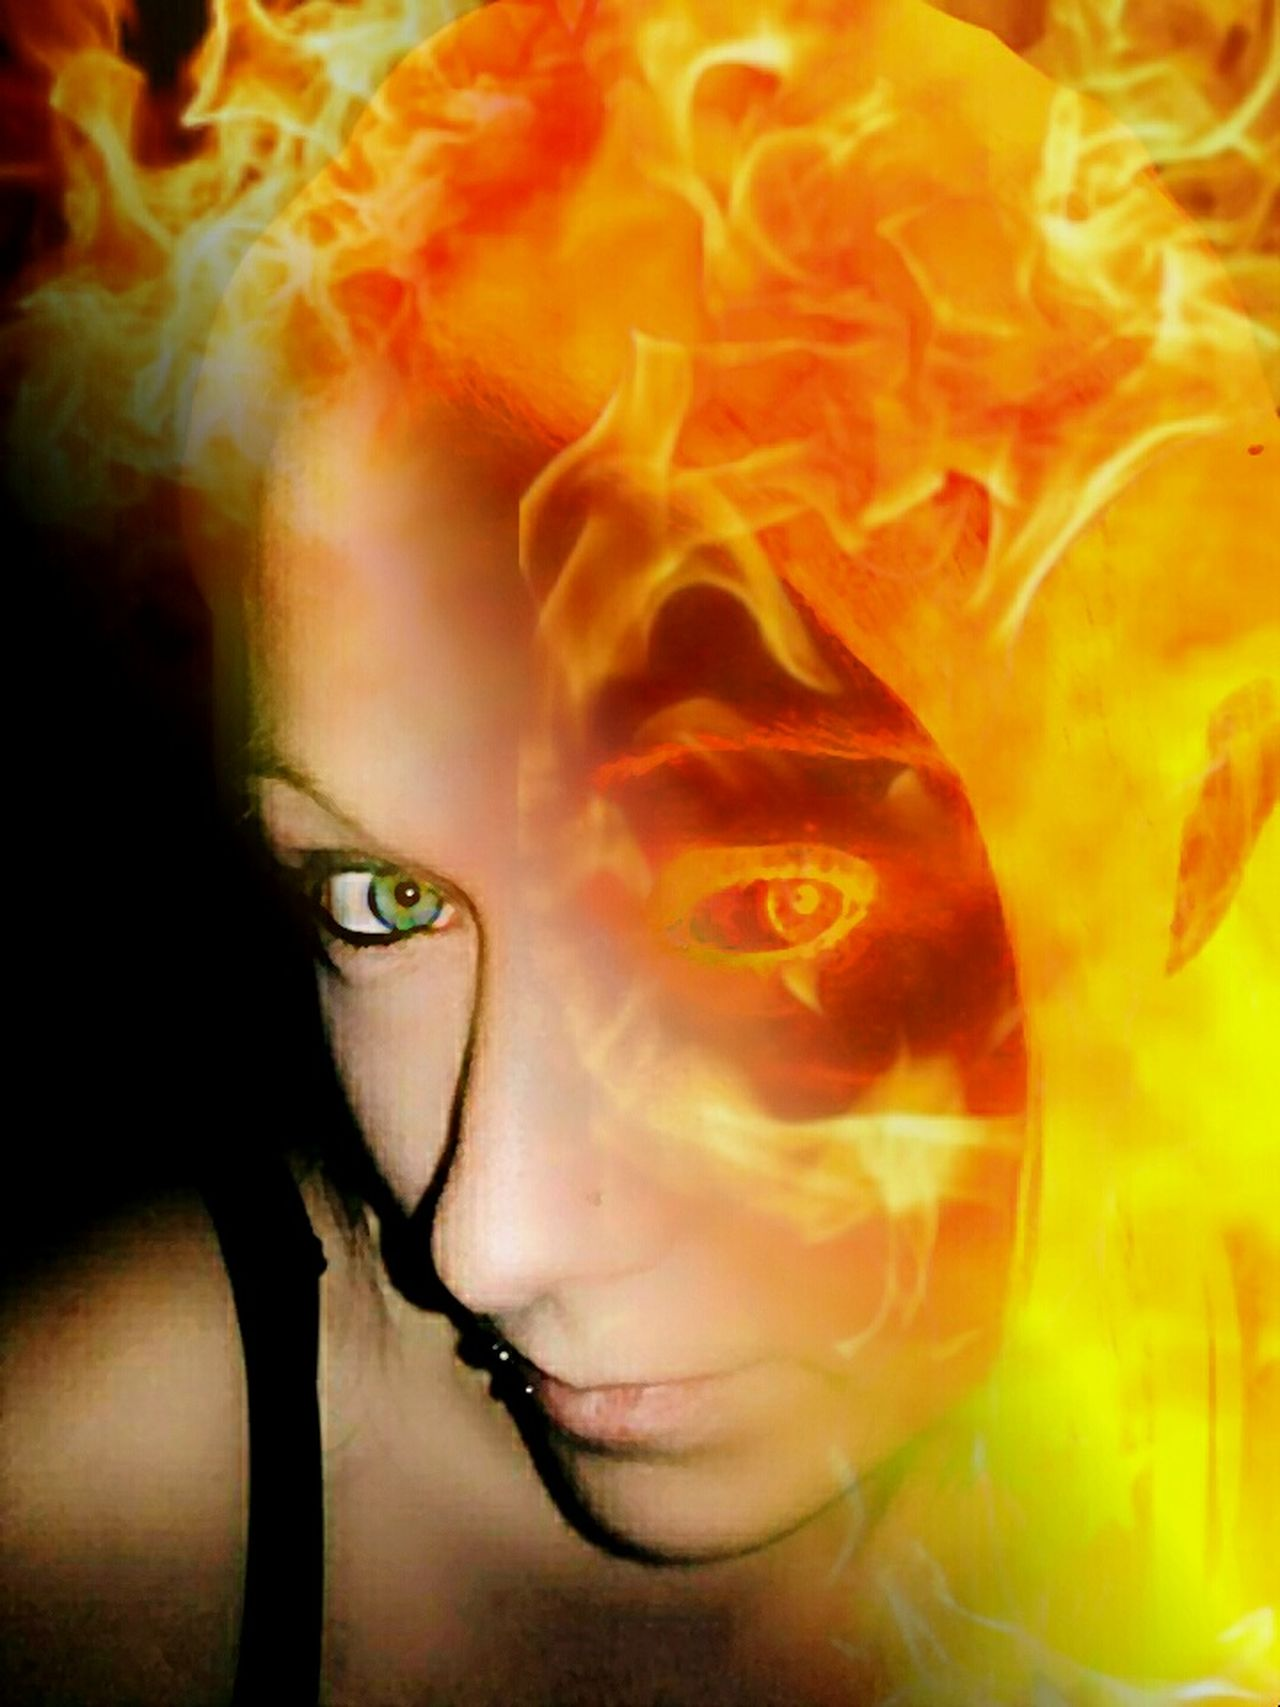 One Person One Woman Only People Close-up Creative Photography Blended Images Somethingdifferent Somethingnew Girlonfire Flames Photographyart Artistic EyeEm Best Edits EyeEm EyeEmArtists Michigan, USA Perspective Artistic Expression Photography Is My Escape From Reality!